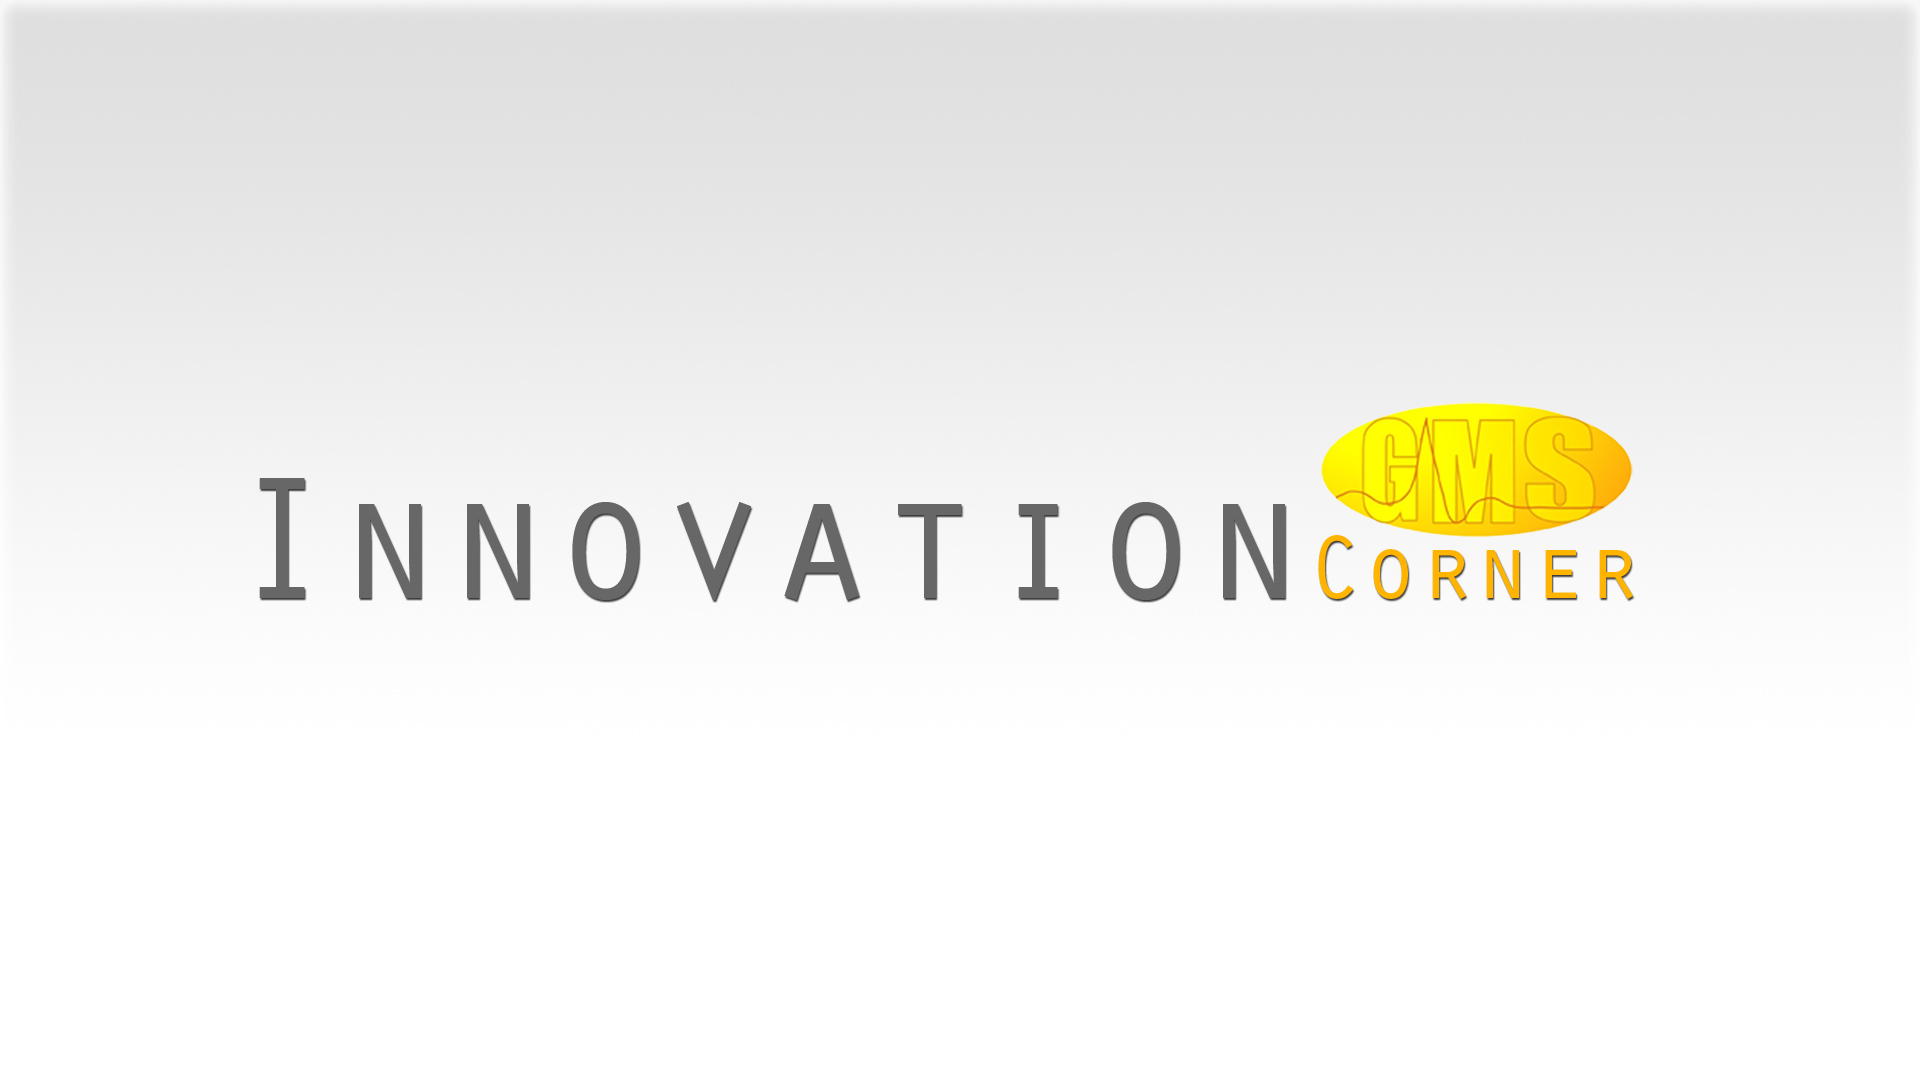 Innovation Corner - OneNote